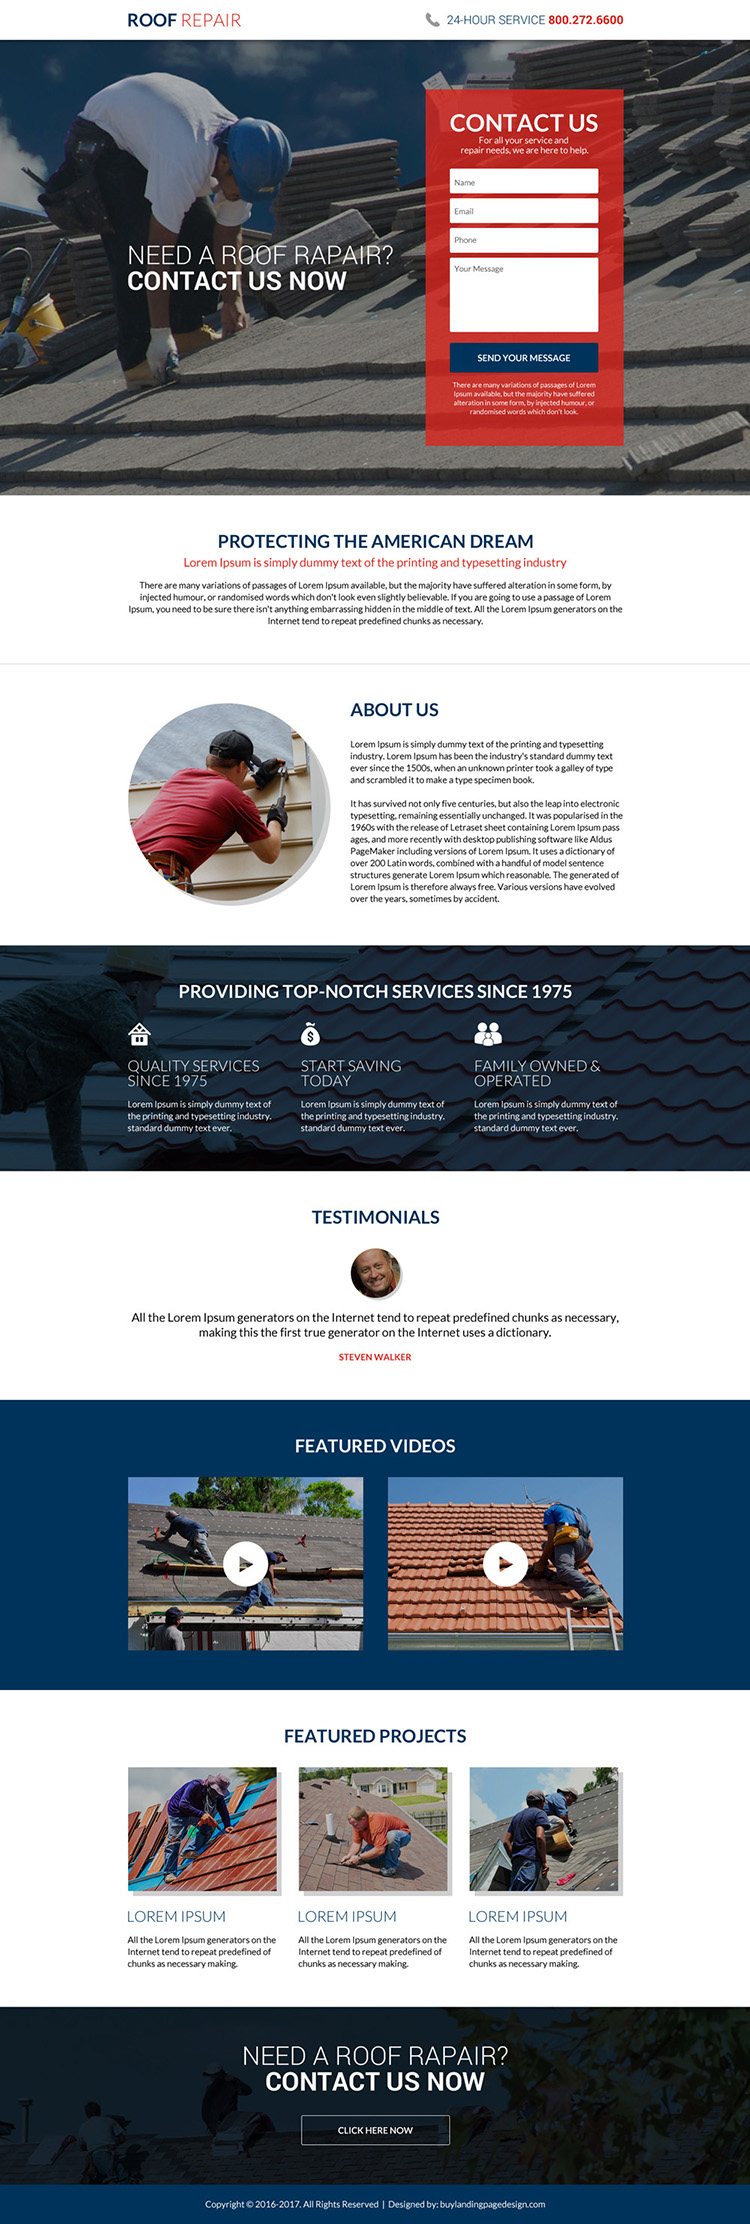 roofing repair service lead capturing landing page design